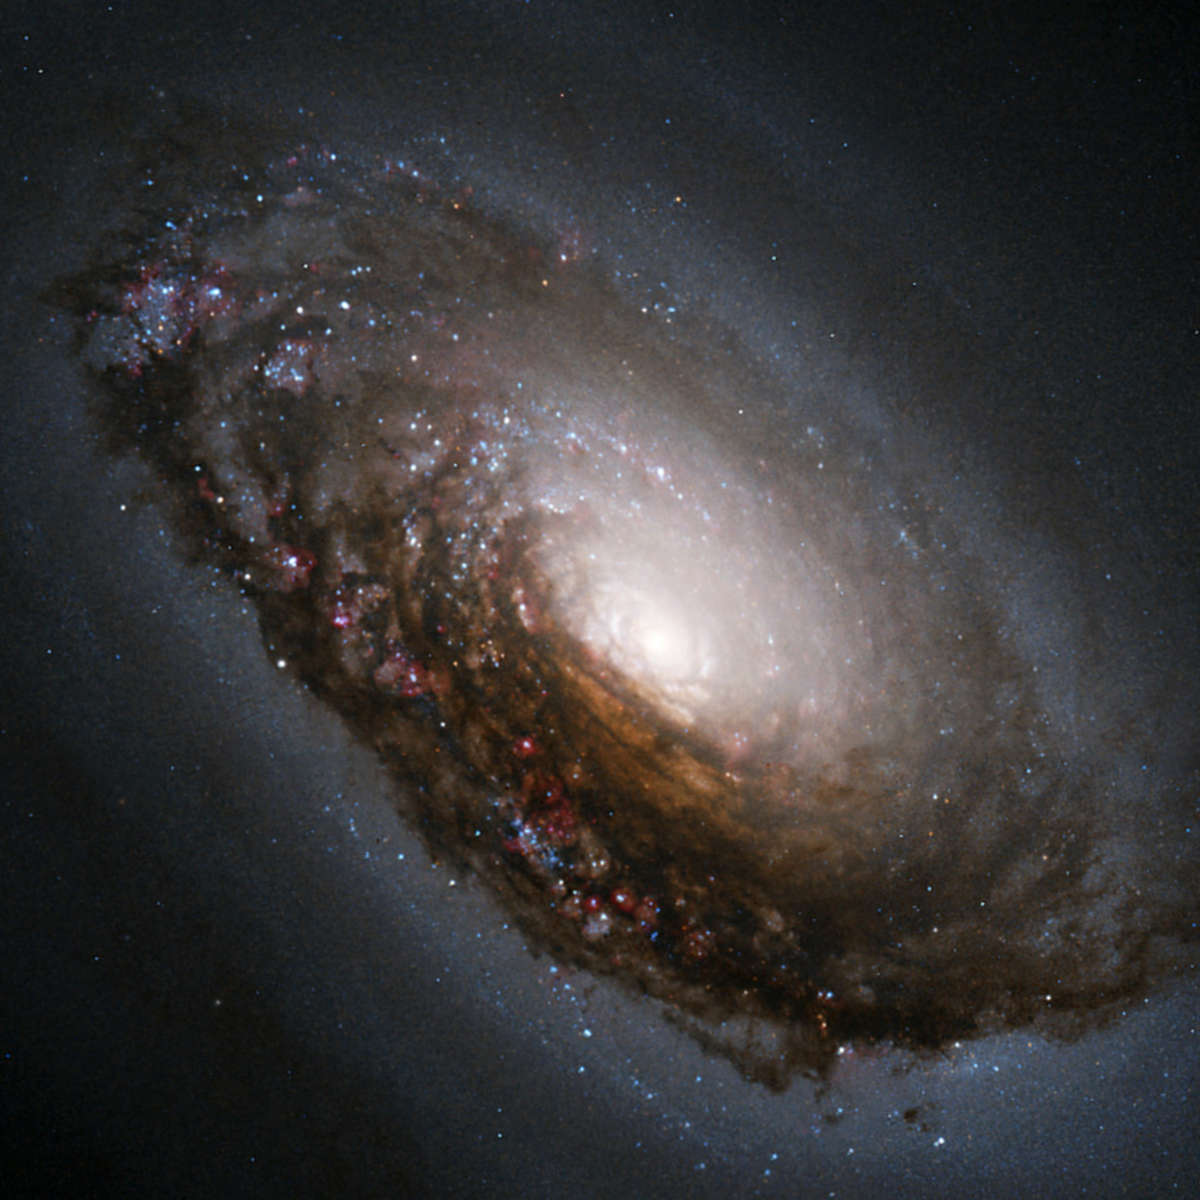 M64, the Black Eye galaxy. Credit: NASA/ESA and The Hubble Heritage Team (AURA/STScI)